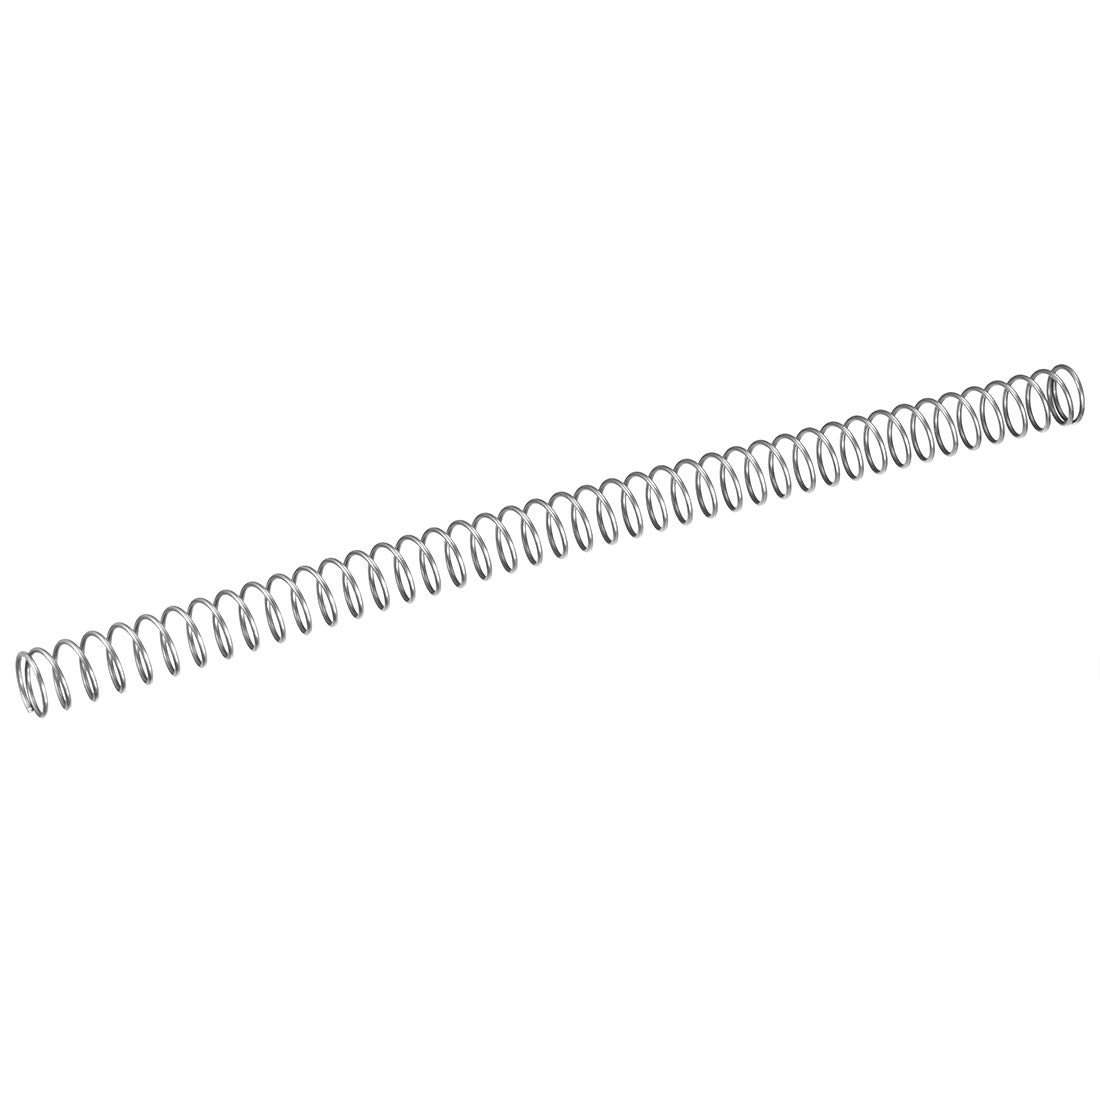 Free Length 0.39 Stainless Steel Coil Extended Compressed Spring 10pcs sourcing map Wire Diameter 0.03 OD 0.2